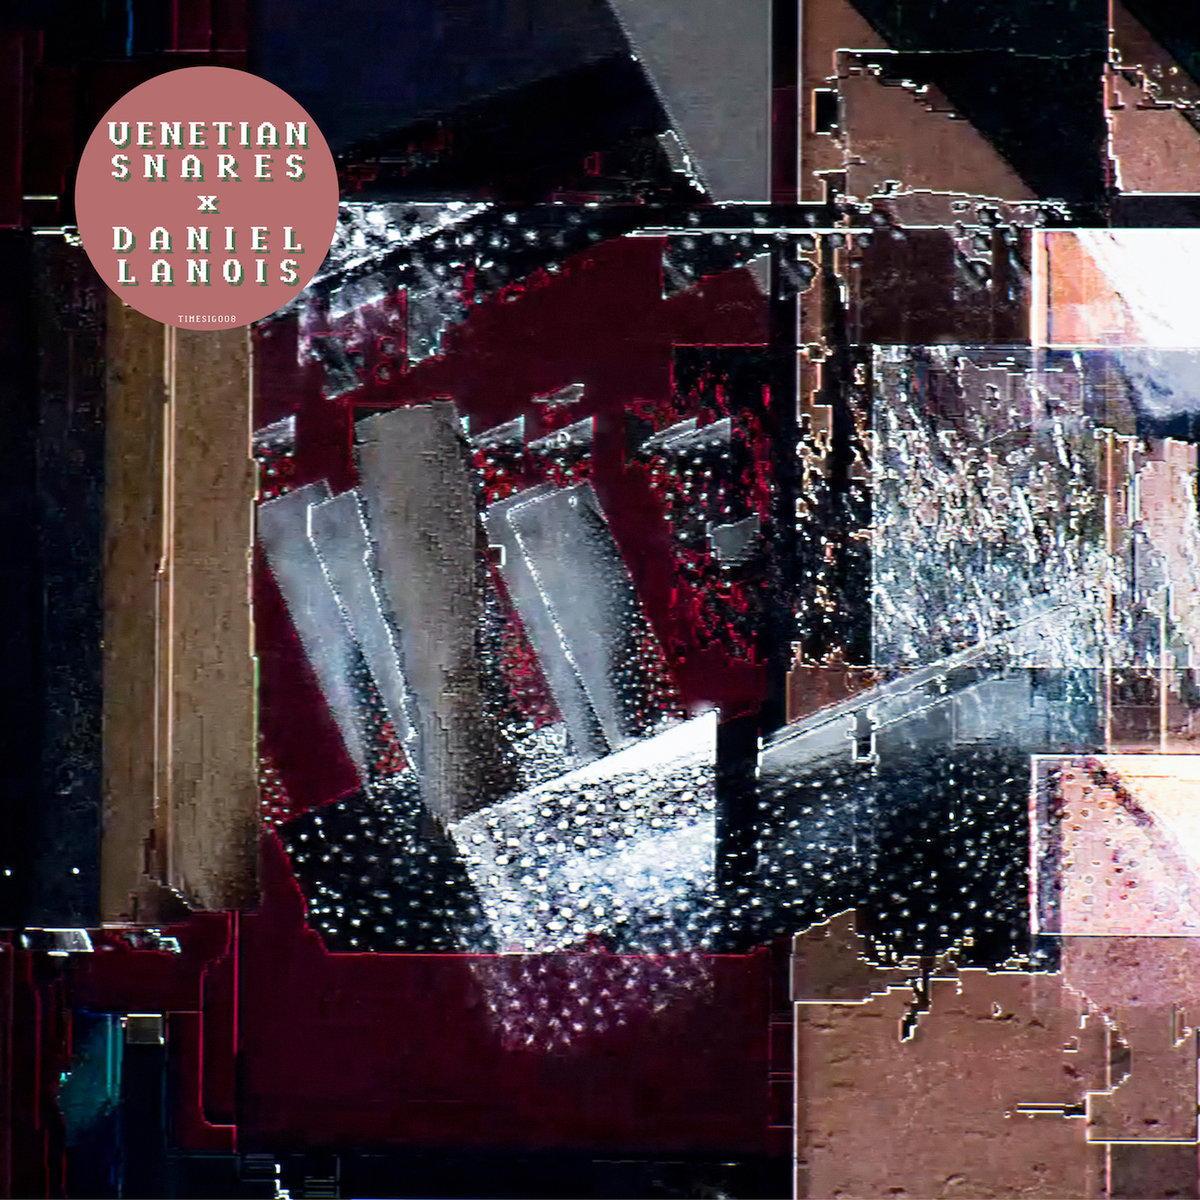 Venetian Snares Daniel Lanois collaborative album